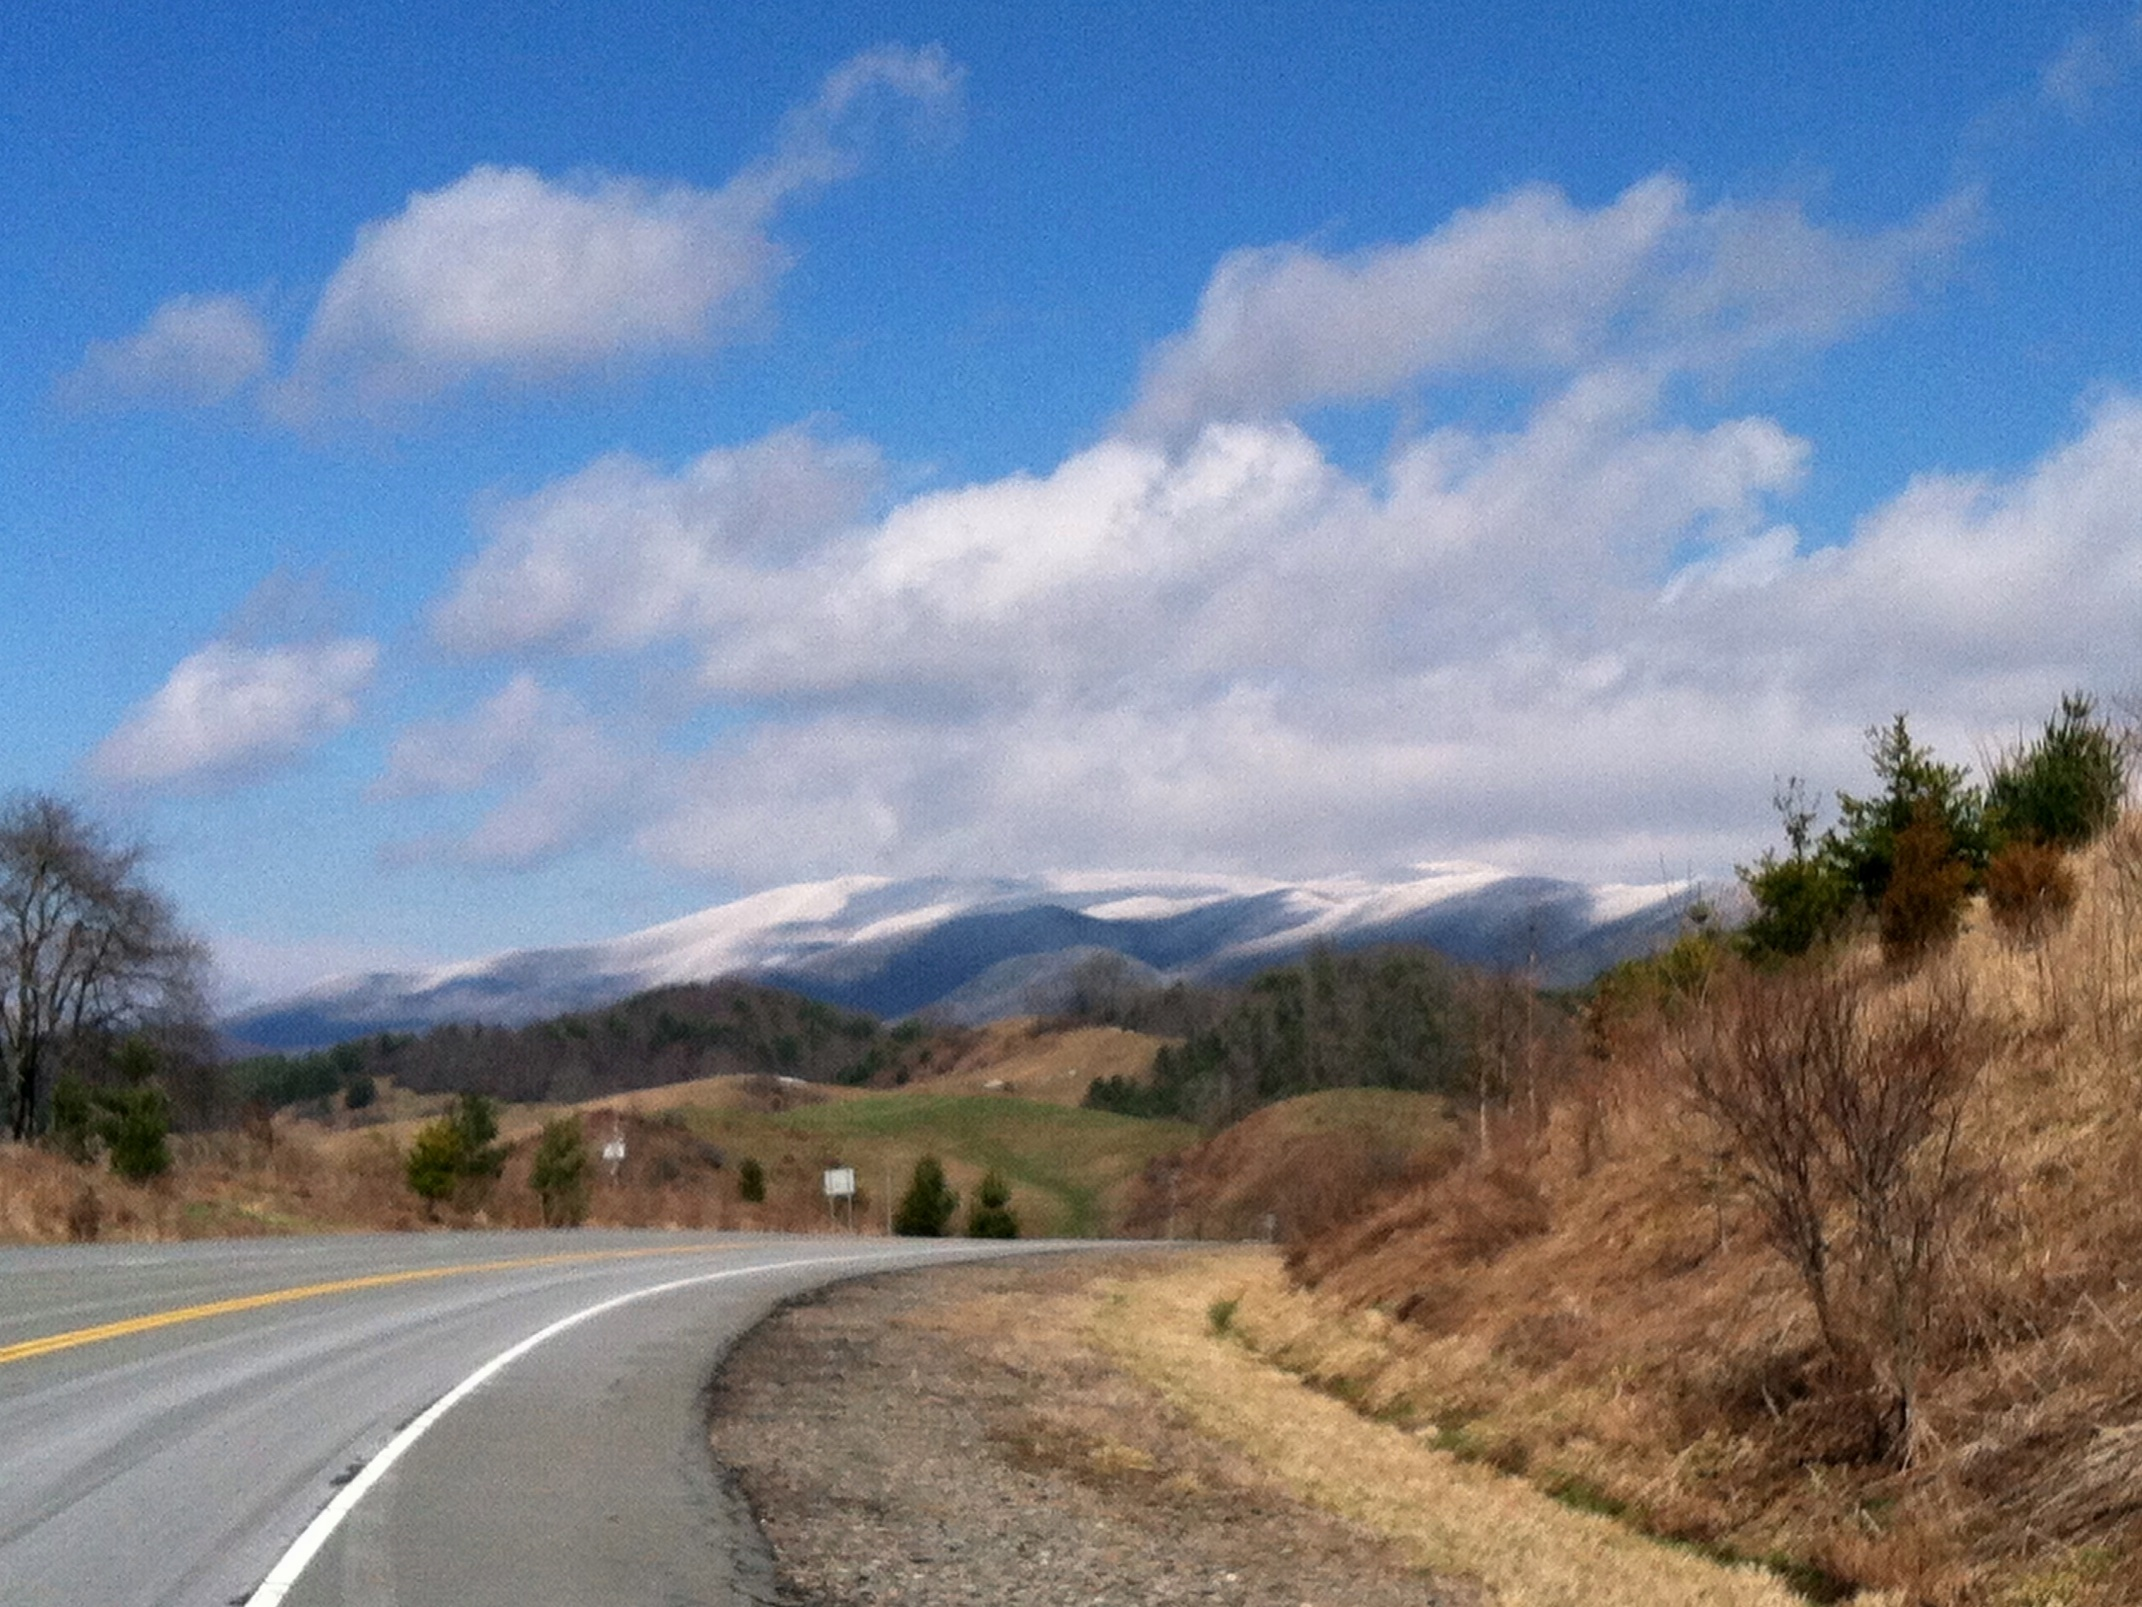 View of Pond Mountain from Route 91 Between Mountain City and Laurel Bloomery, Tennessee, March 30, 2014